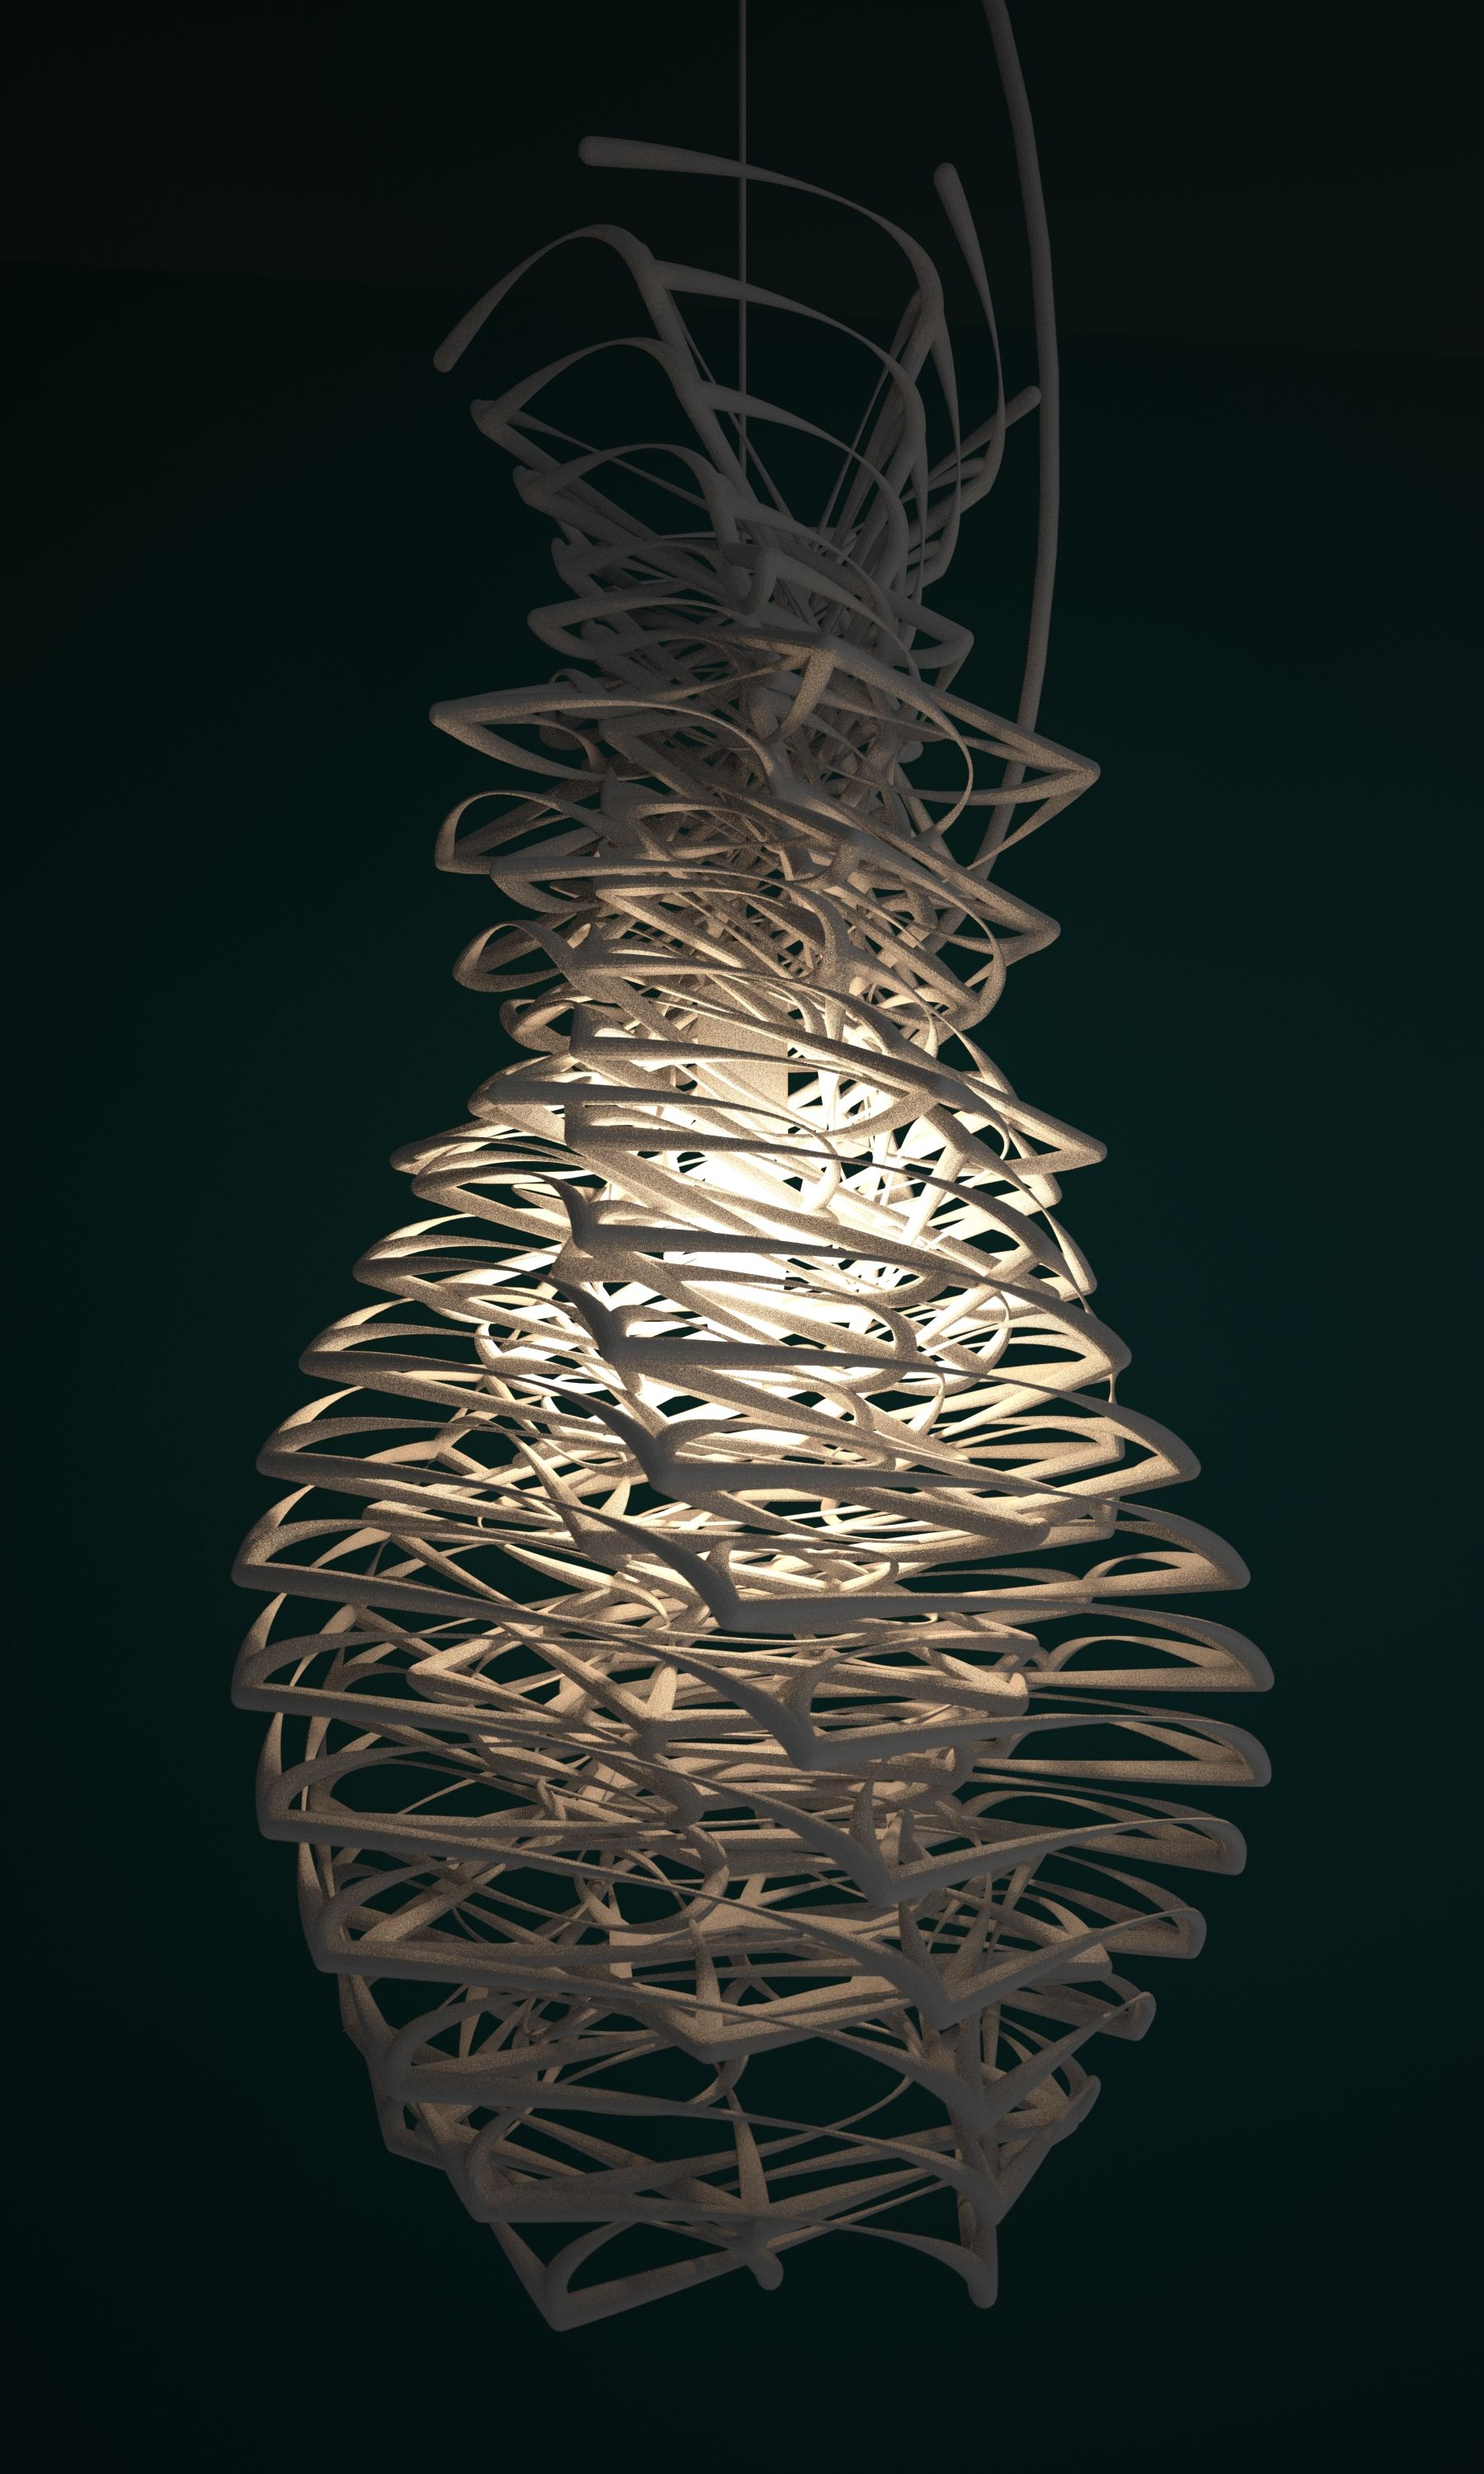 Lamp Shade 3d Print By Studioluminaire Futuristic Lighting Futuristic Interior Art Lamp